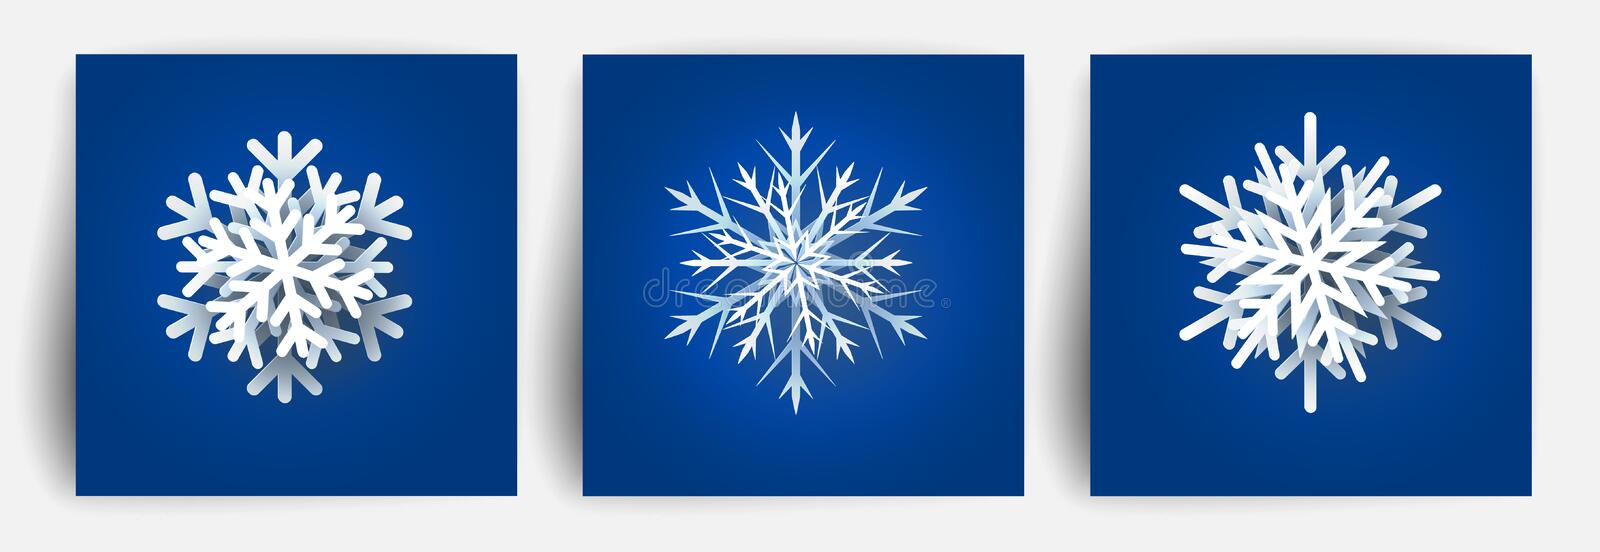 Set of Christmas snowflakes. Paper cut 3d design elements. Christmas paper cut snow flake. Vector illustration. EPS 10. stock illustration